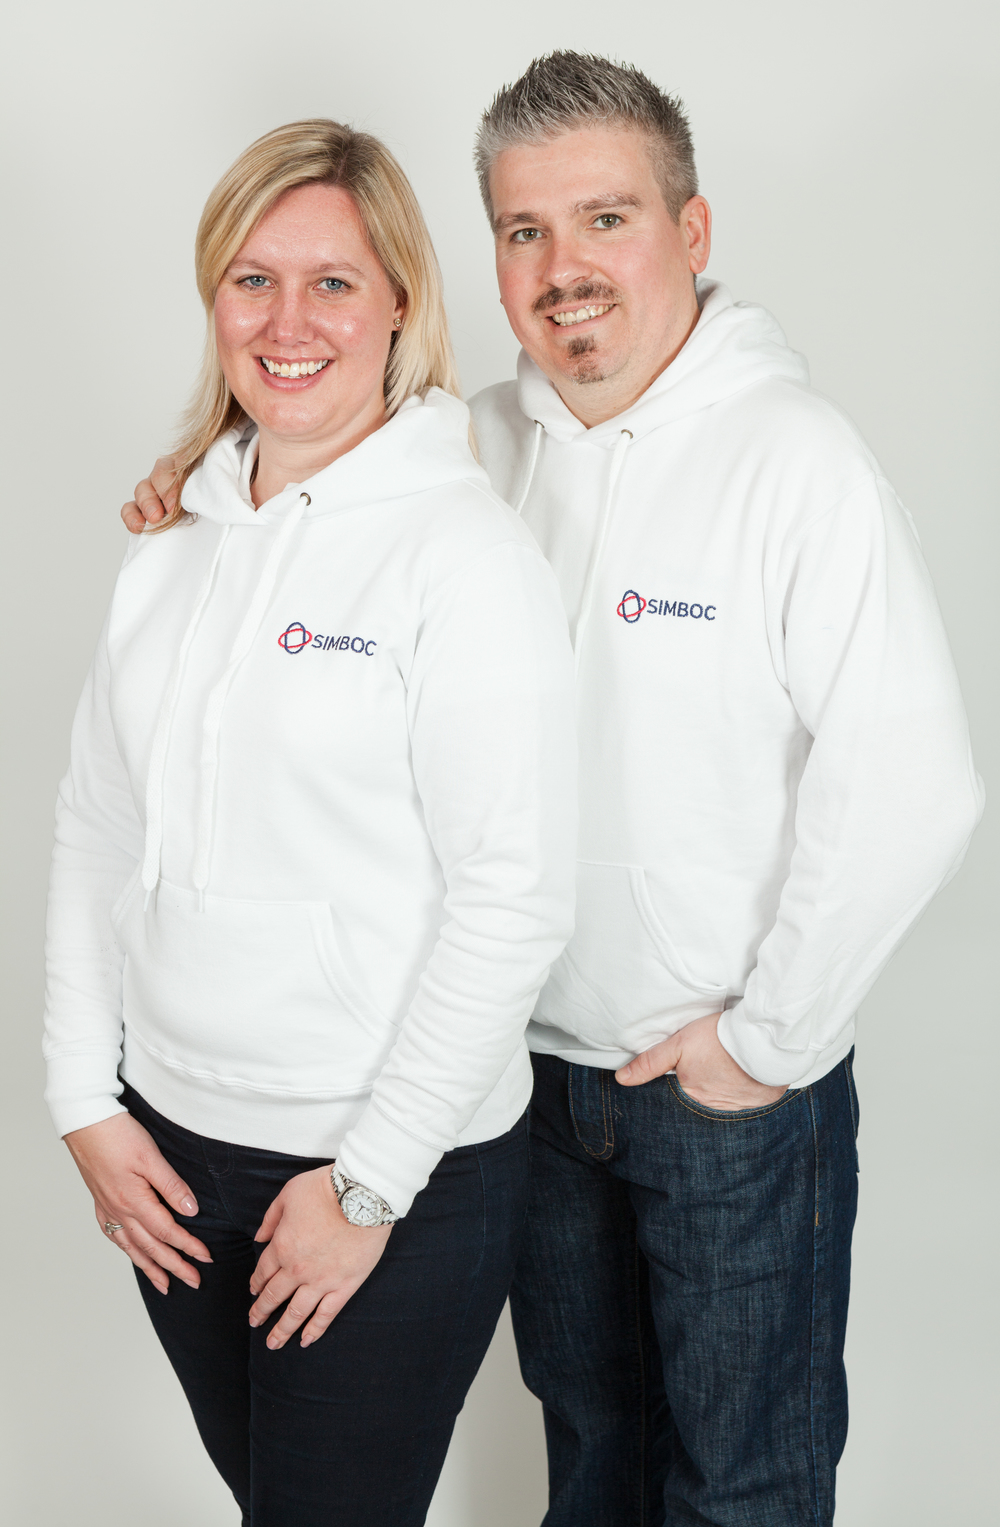 Jo and Dave - Simboc Hoddies_SimbocLtd_6337.jpg